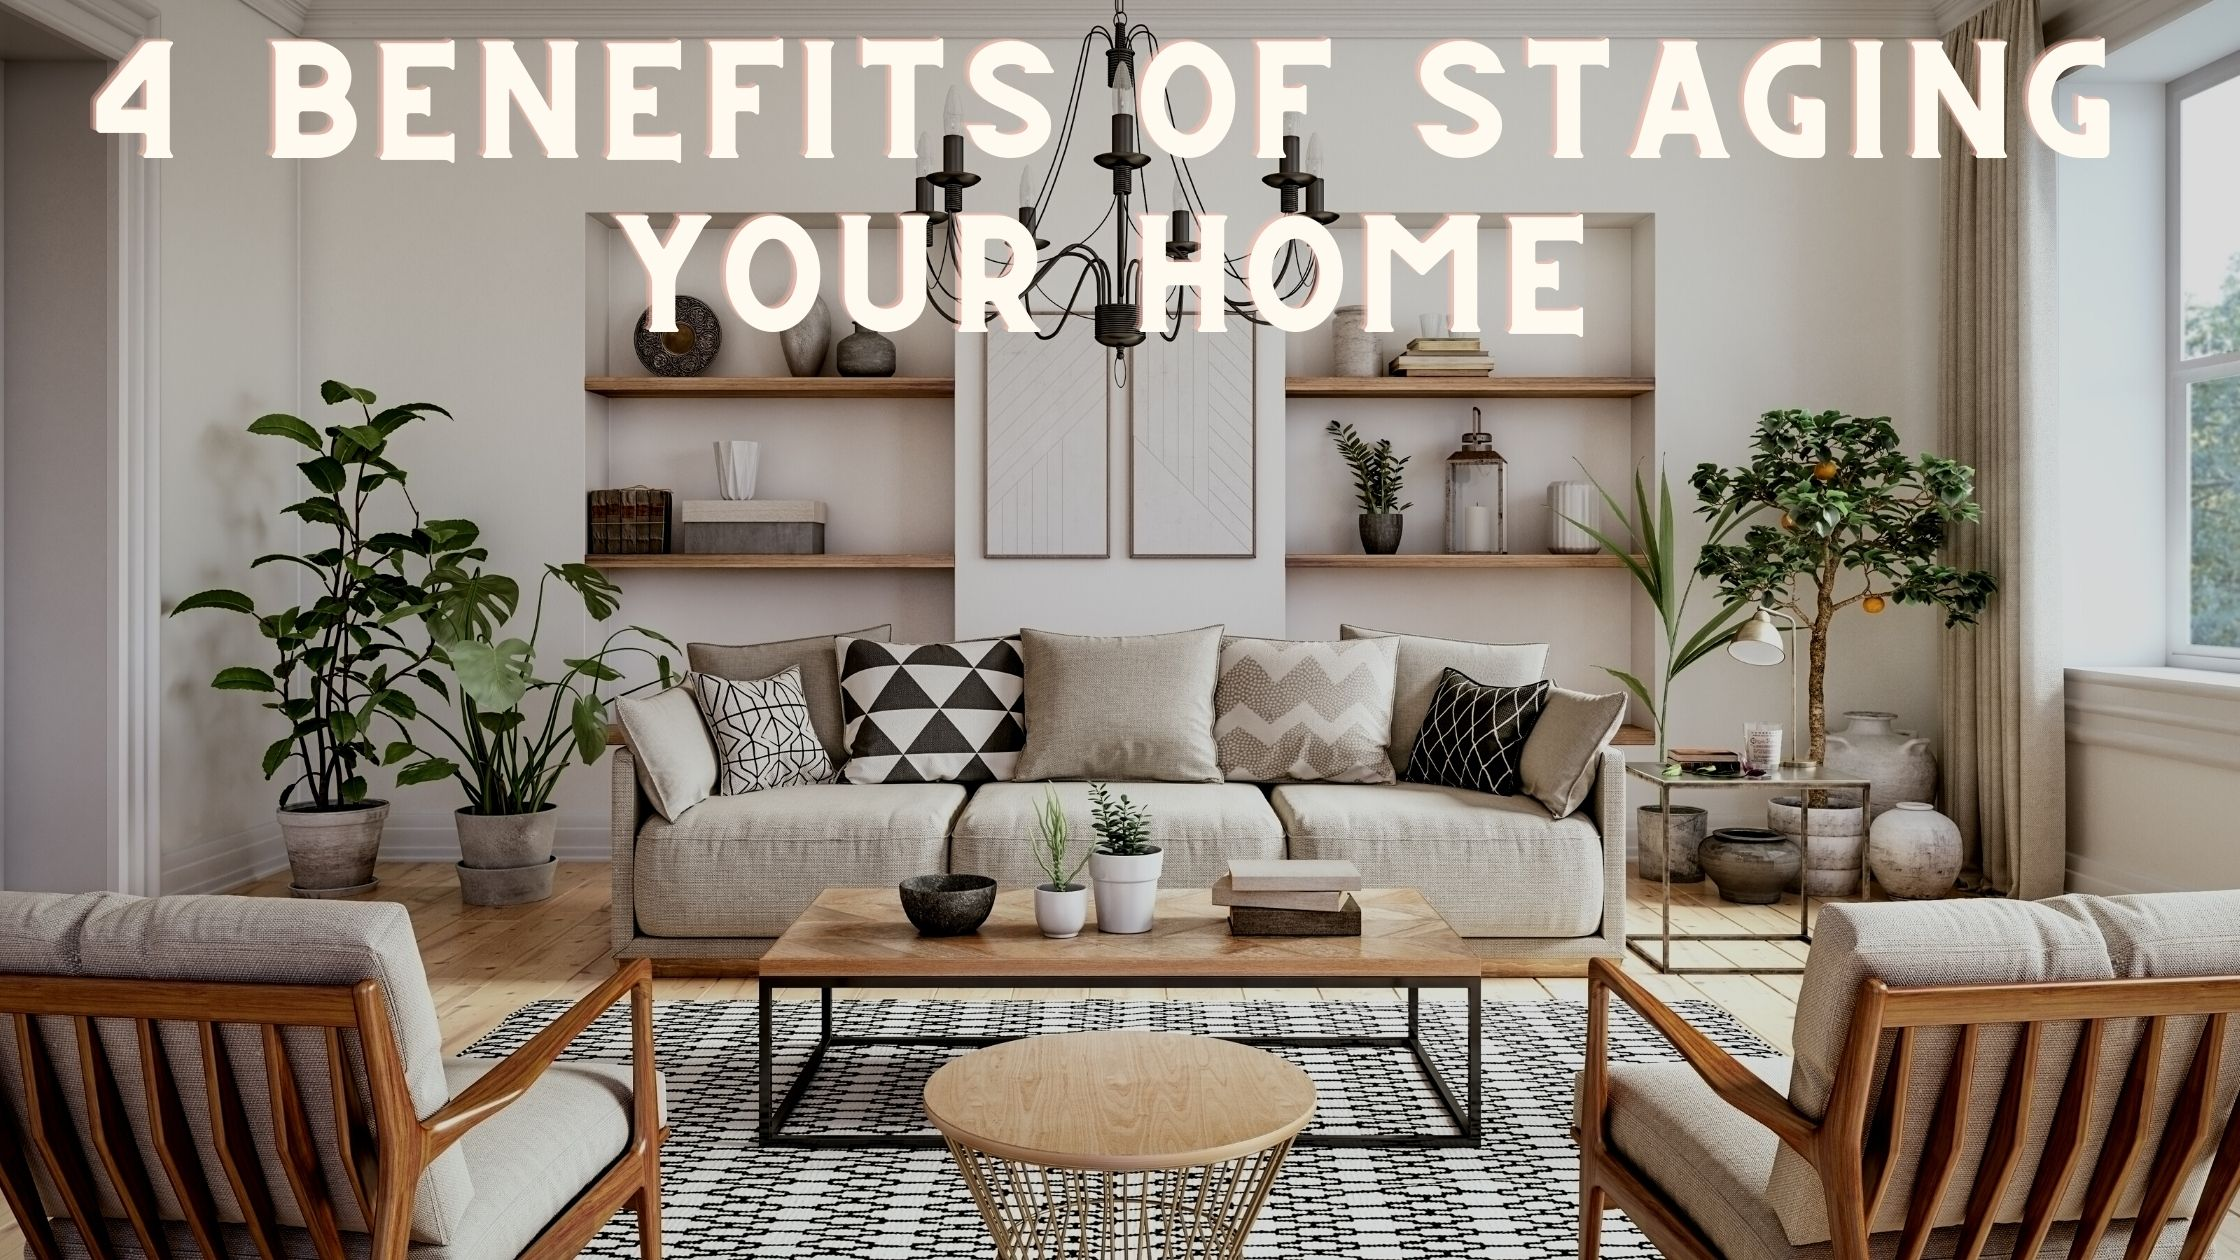 4 Benefits of Staging Your Home